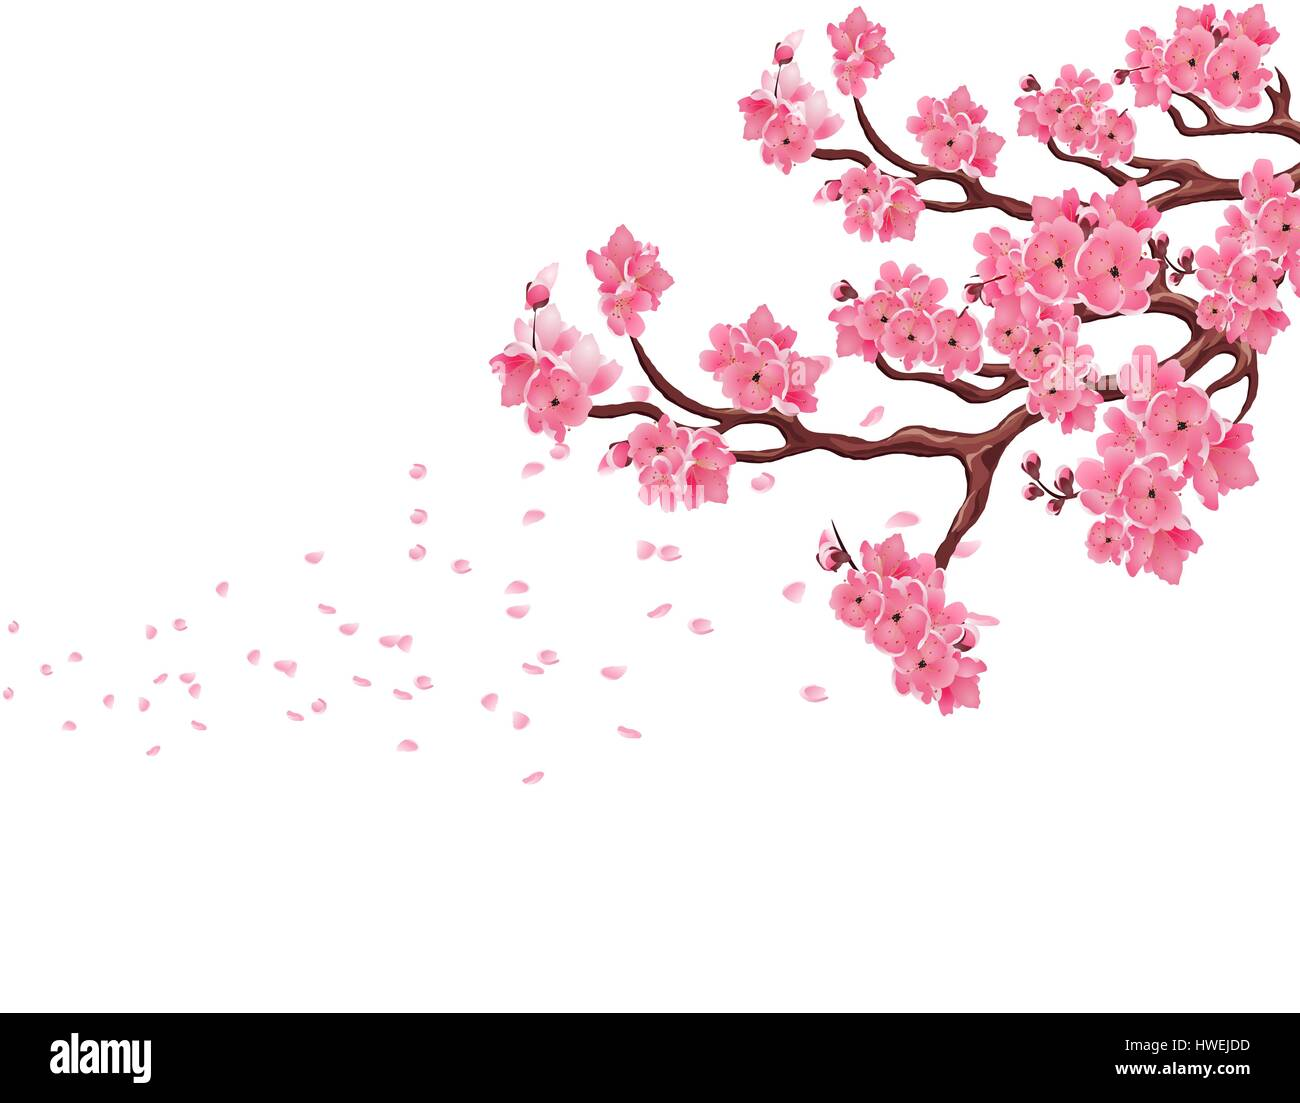 Sakura Falling Live Wallpaper Downloads Branches With Pink Cherry Blossoms Sakura The Petals Fly